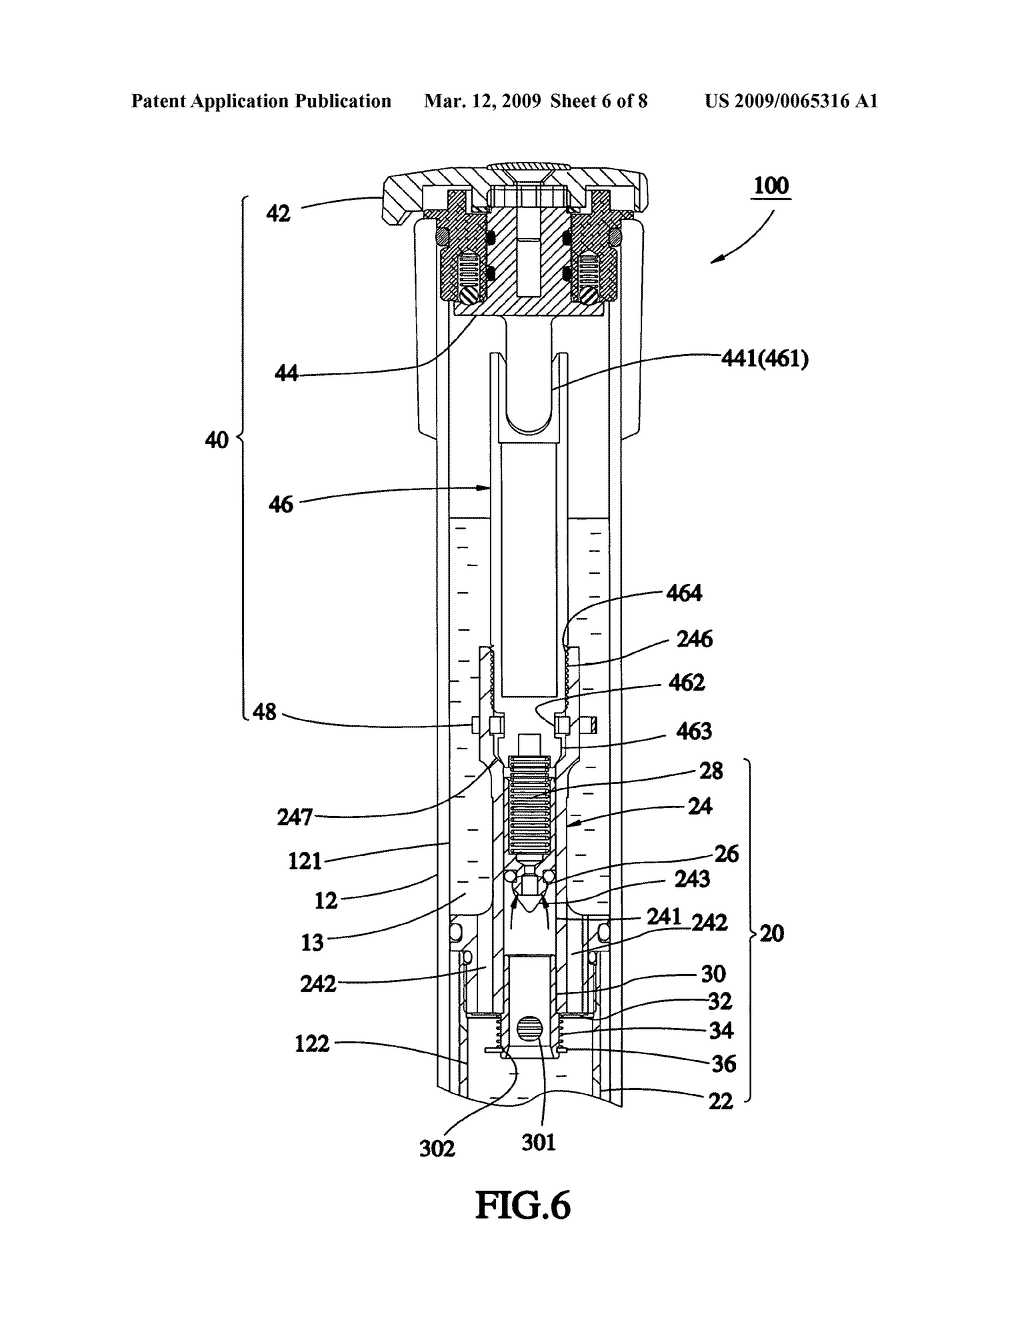 Hydraulic Suspension Wiring Diagram Page 3 And Car Hydraulics Shock Absorber Trusted U2022 Rh Soulmatestyle Co For Cars